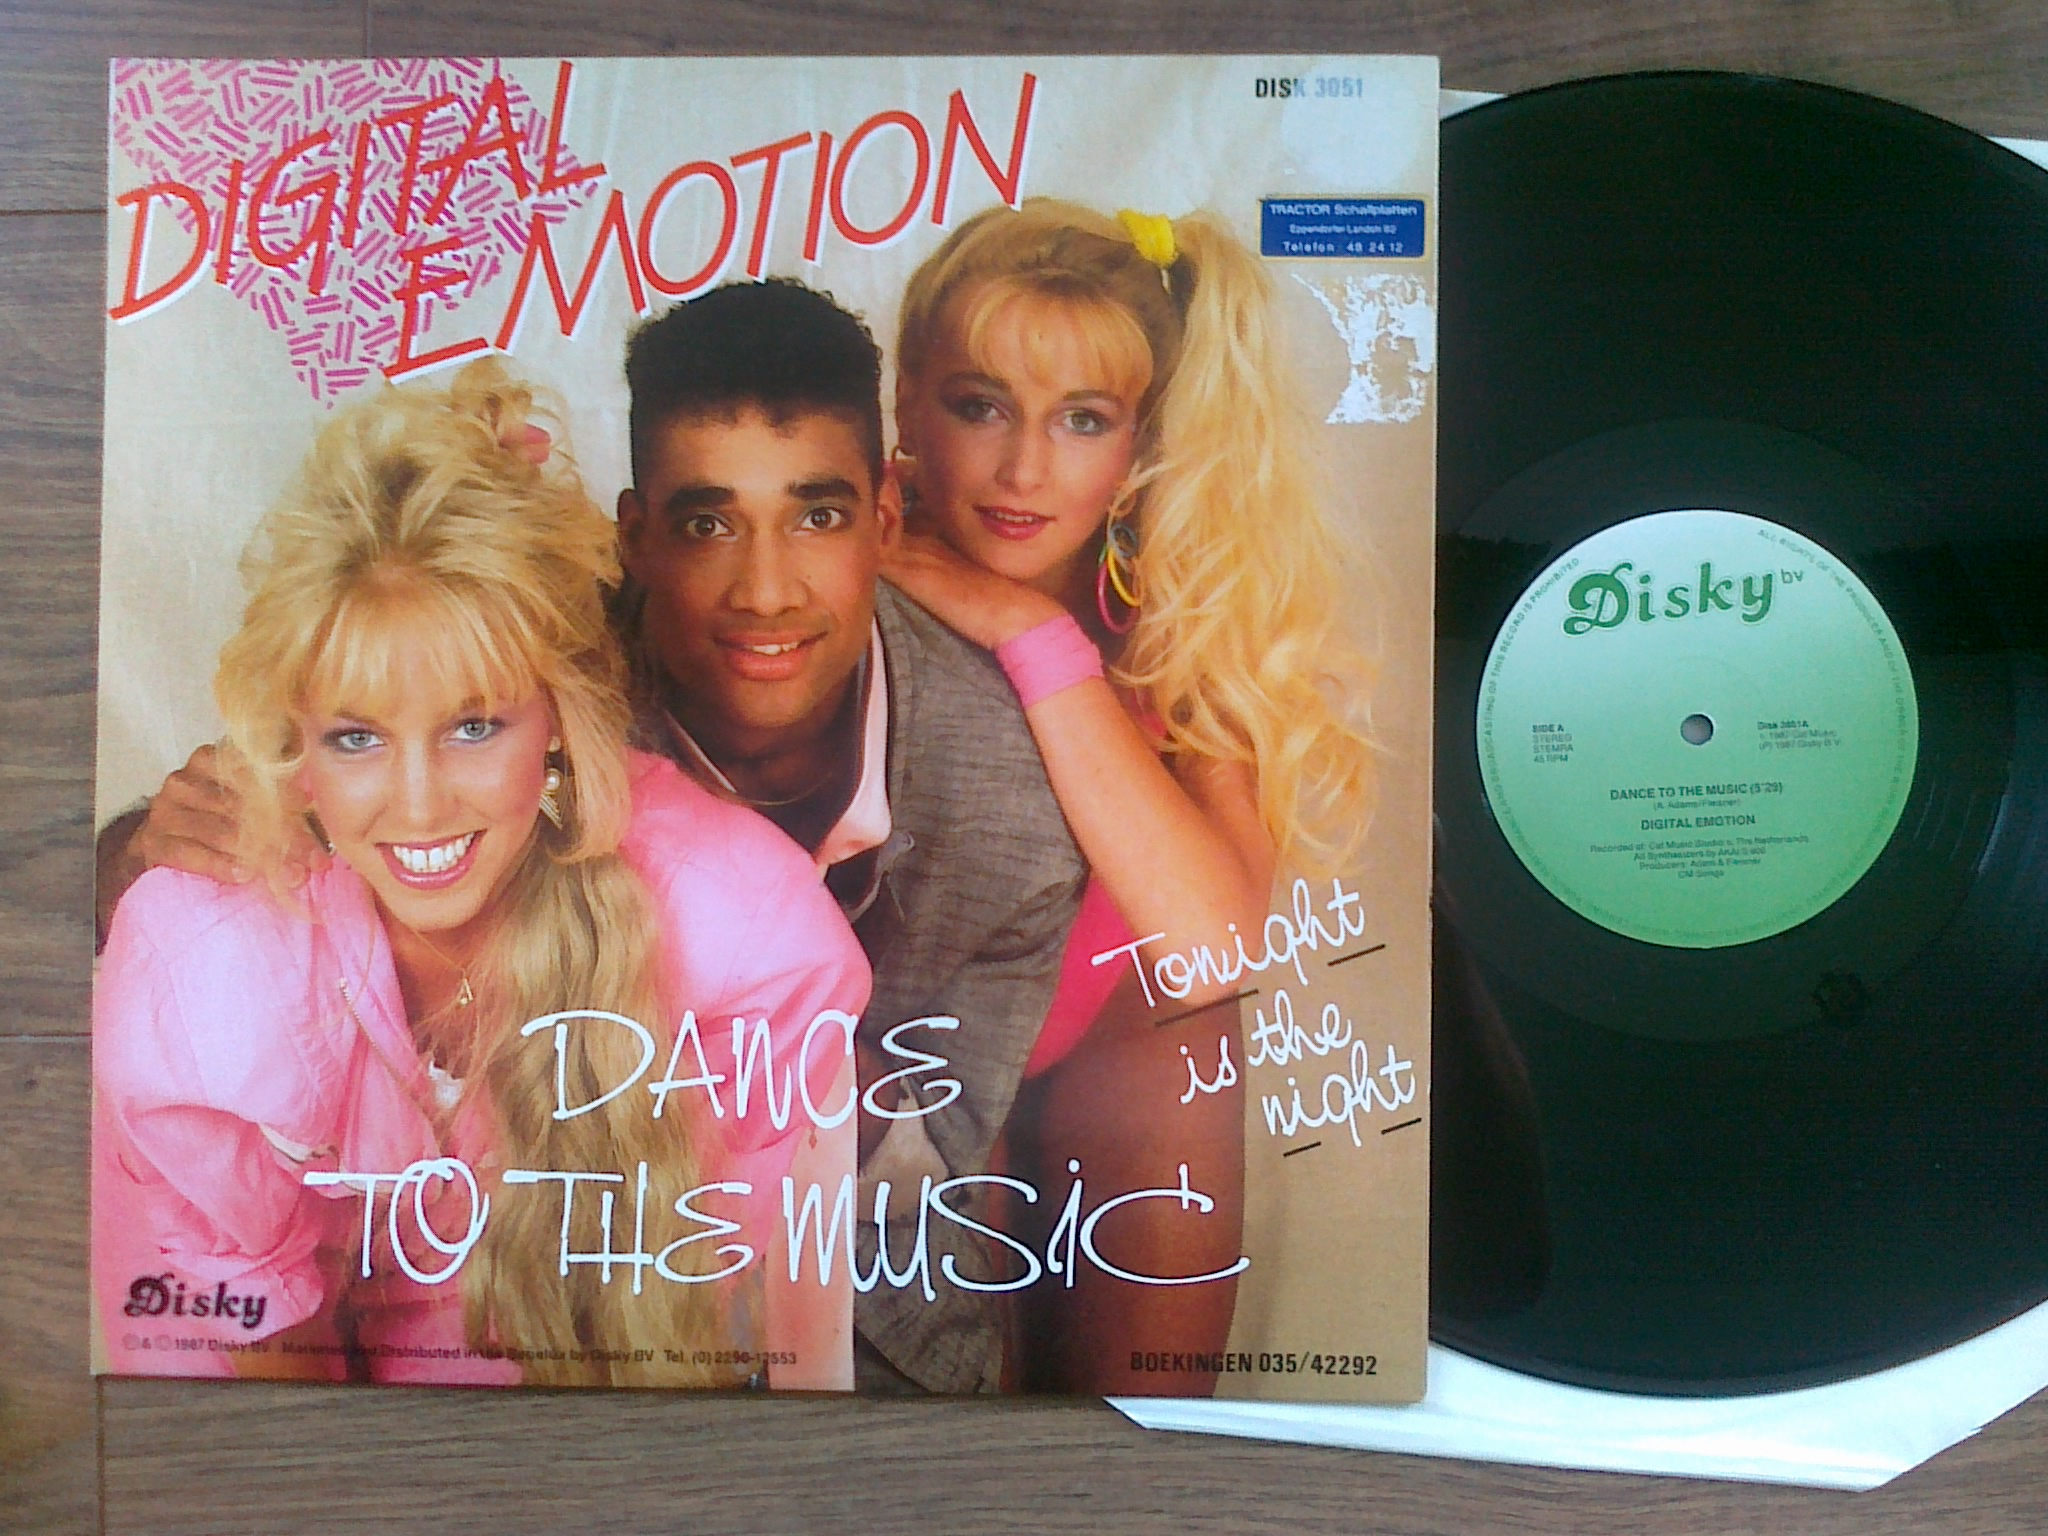 Digital Emotion - Dance To The Music